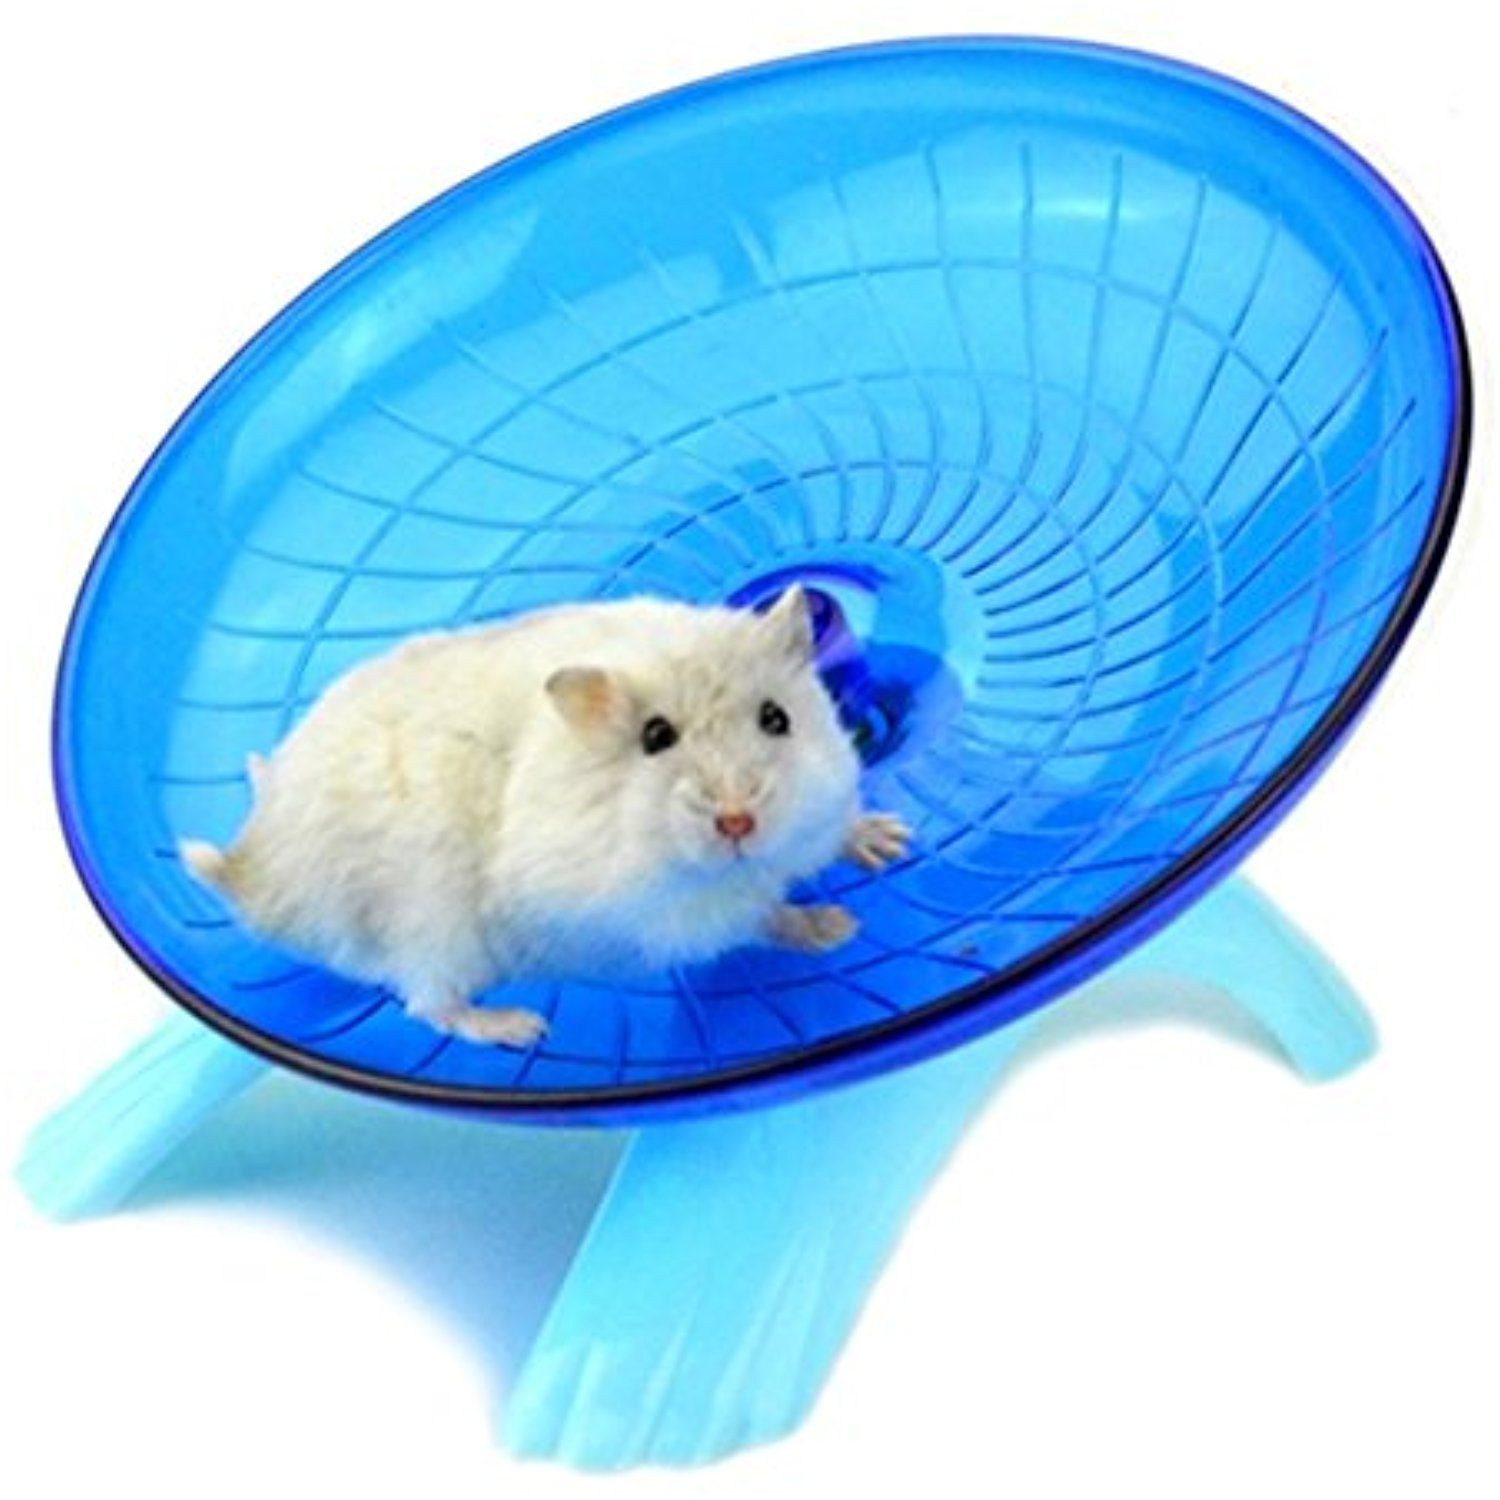 Zehui Cute Ultra Quiet Non Slip Hamster Toystable Flying Saucer Jogging Exercise Wheel Roller For Small Pets Blue 7 Check Out The Small Pets Hamster Pets